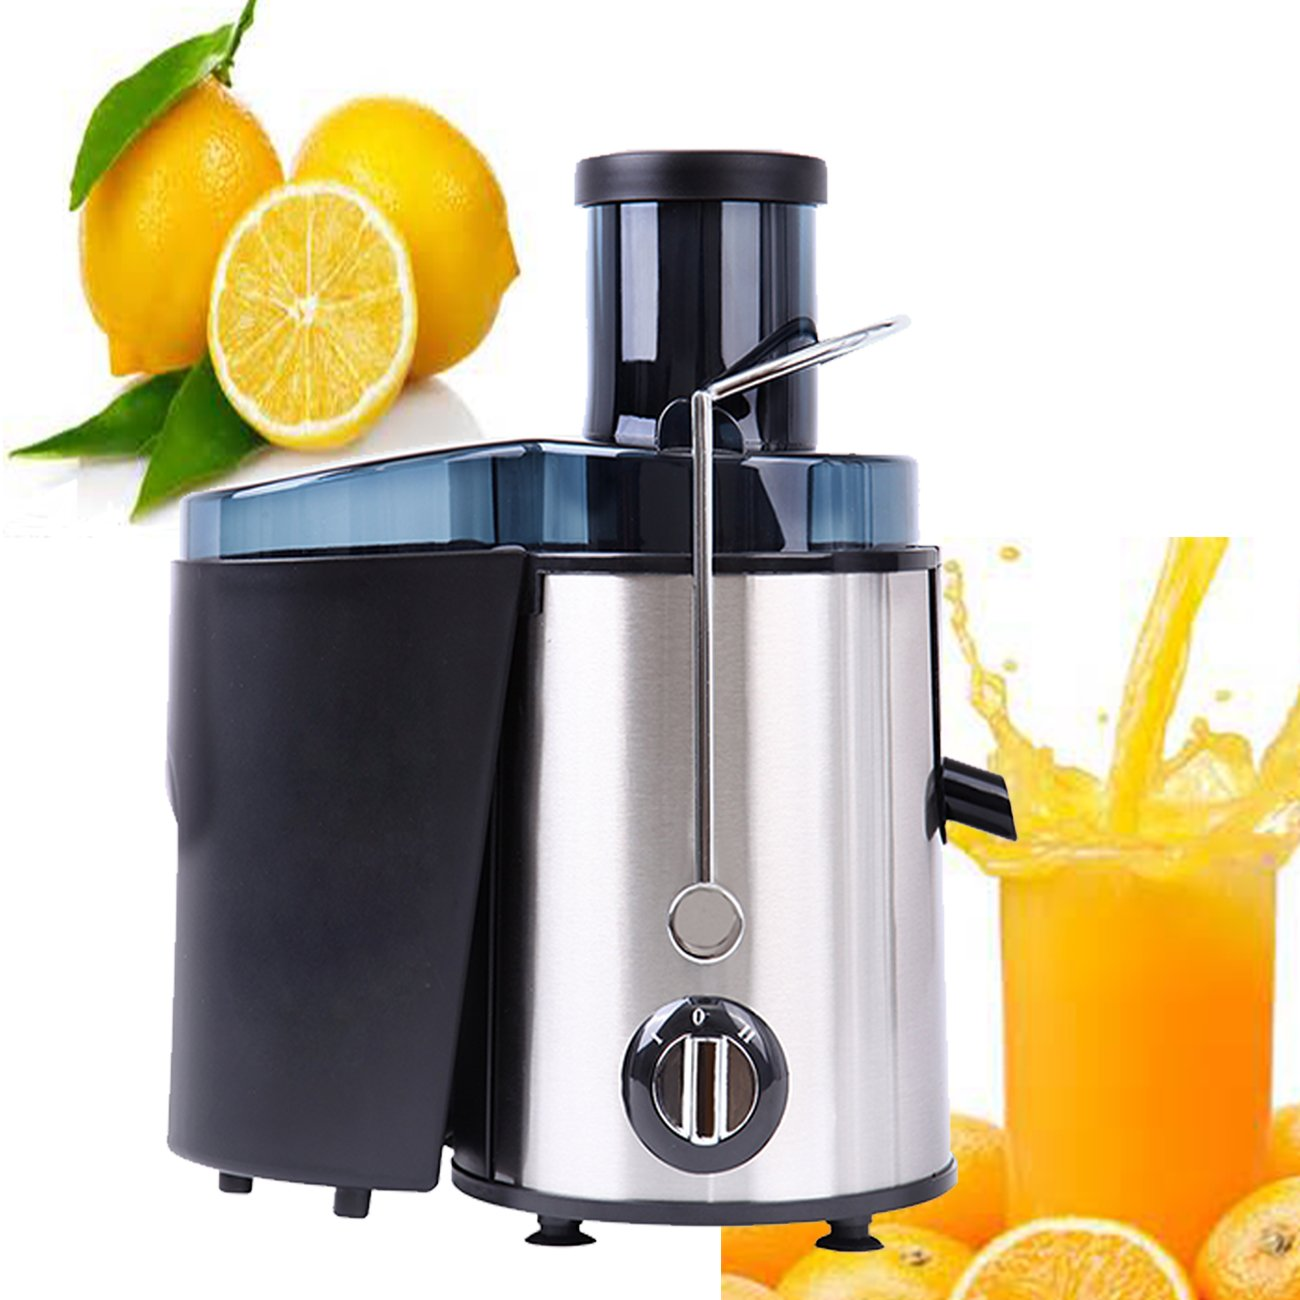 Ridgeyard 400W Electric Juicer Juice Extractor High Speed for Fruit and Vegetables Dual Speed Setting Centrifugal Fruit Machine with Juice Jug, Premium Food Grade Stainless Steel by Ridgeyard